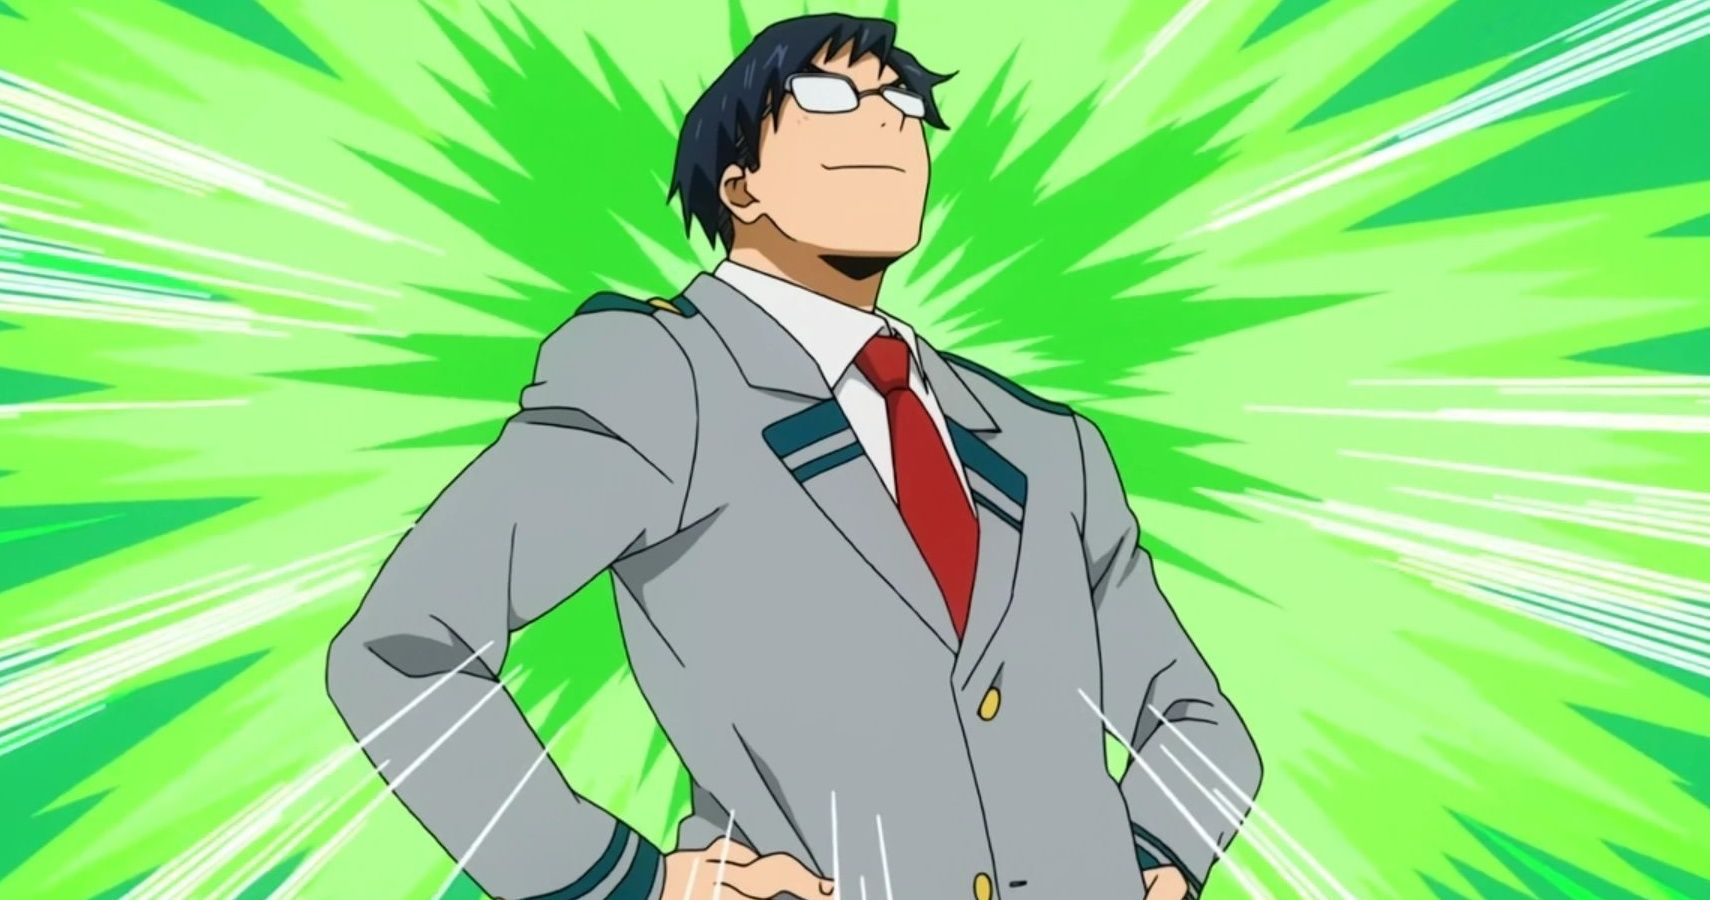 5 Unknown Facts About Tenya Iida